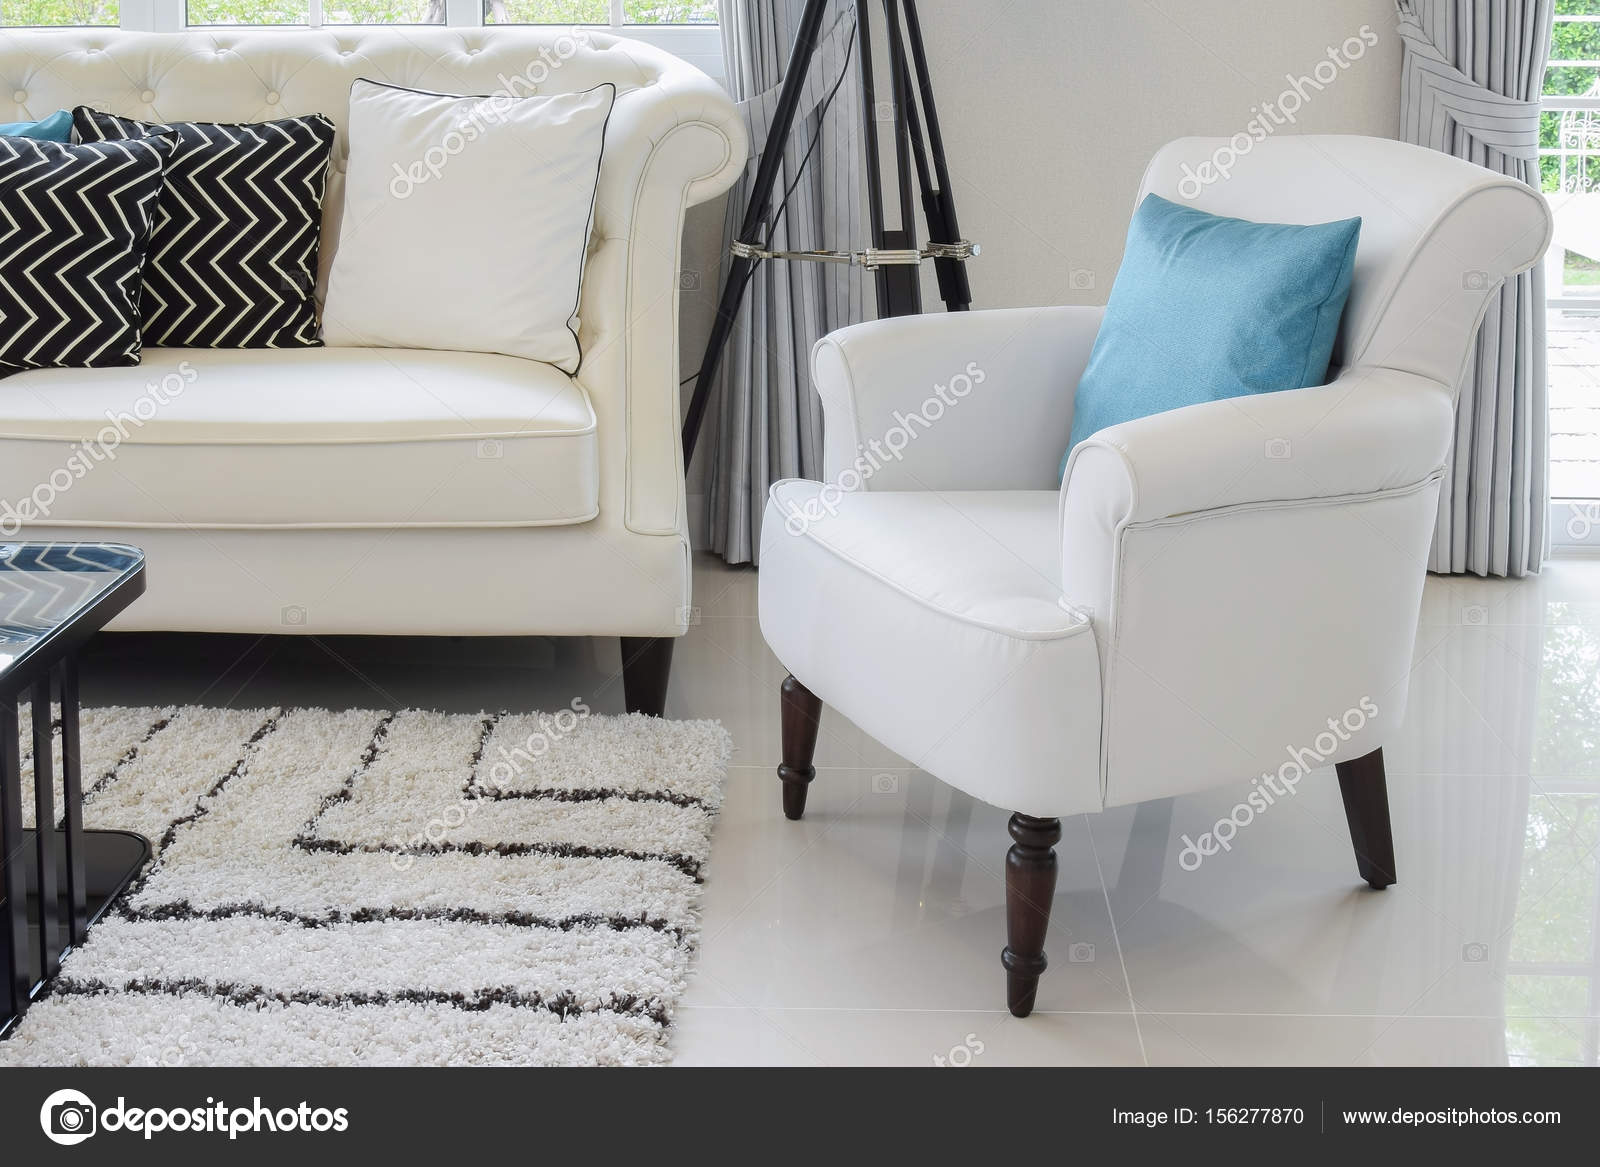 white and blue pillows on a white leather couch in vintage living ...